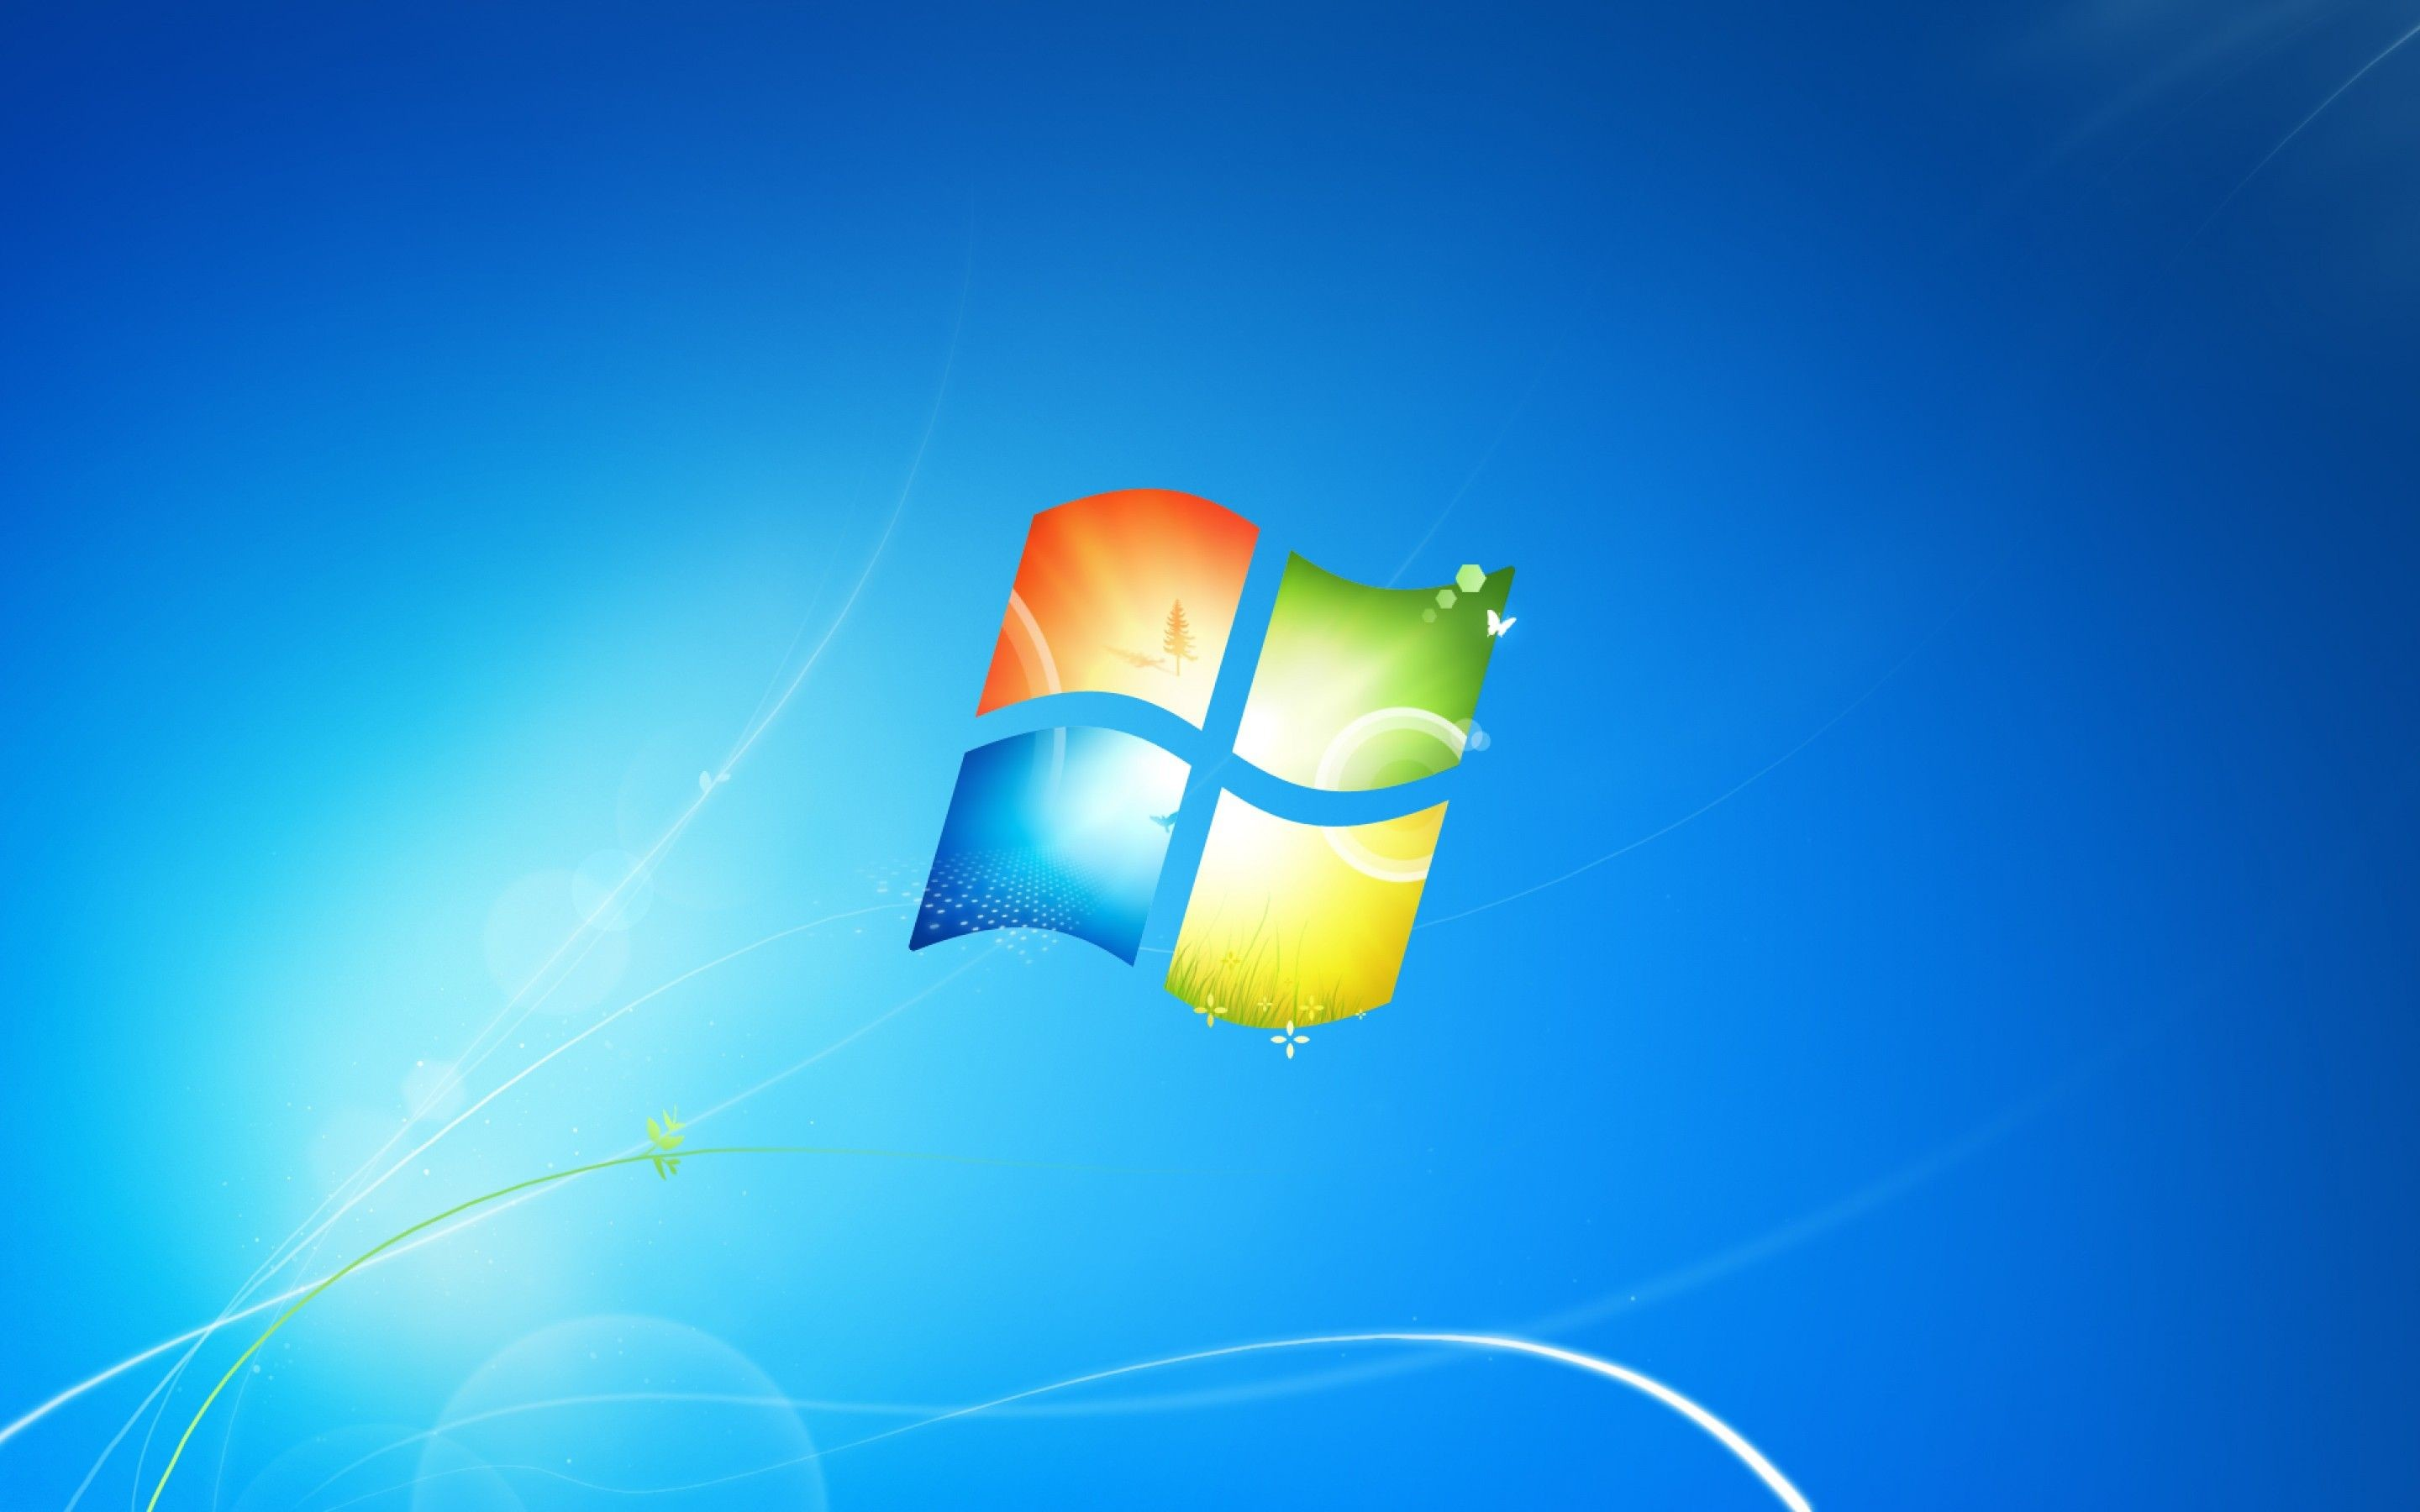 windows 7 wallpaper 1366x768 ·①